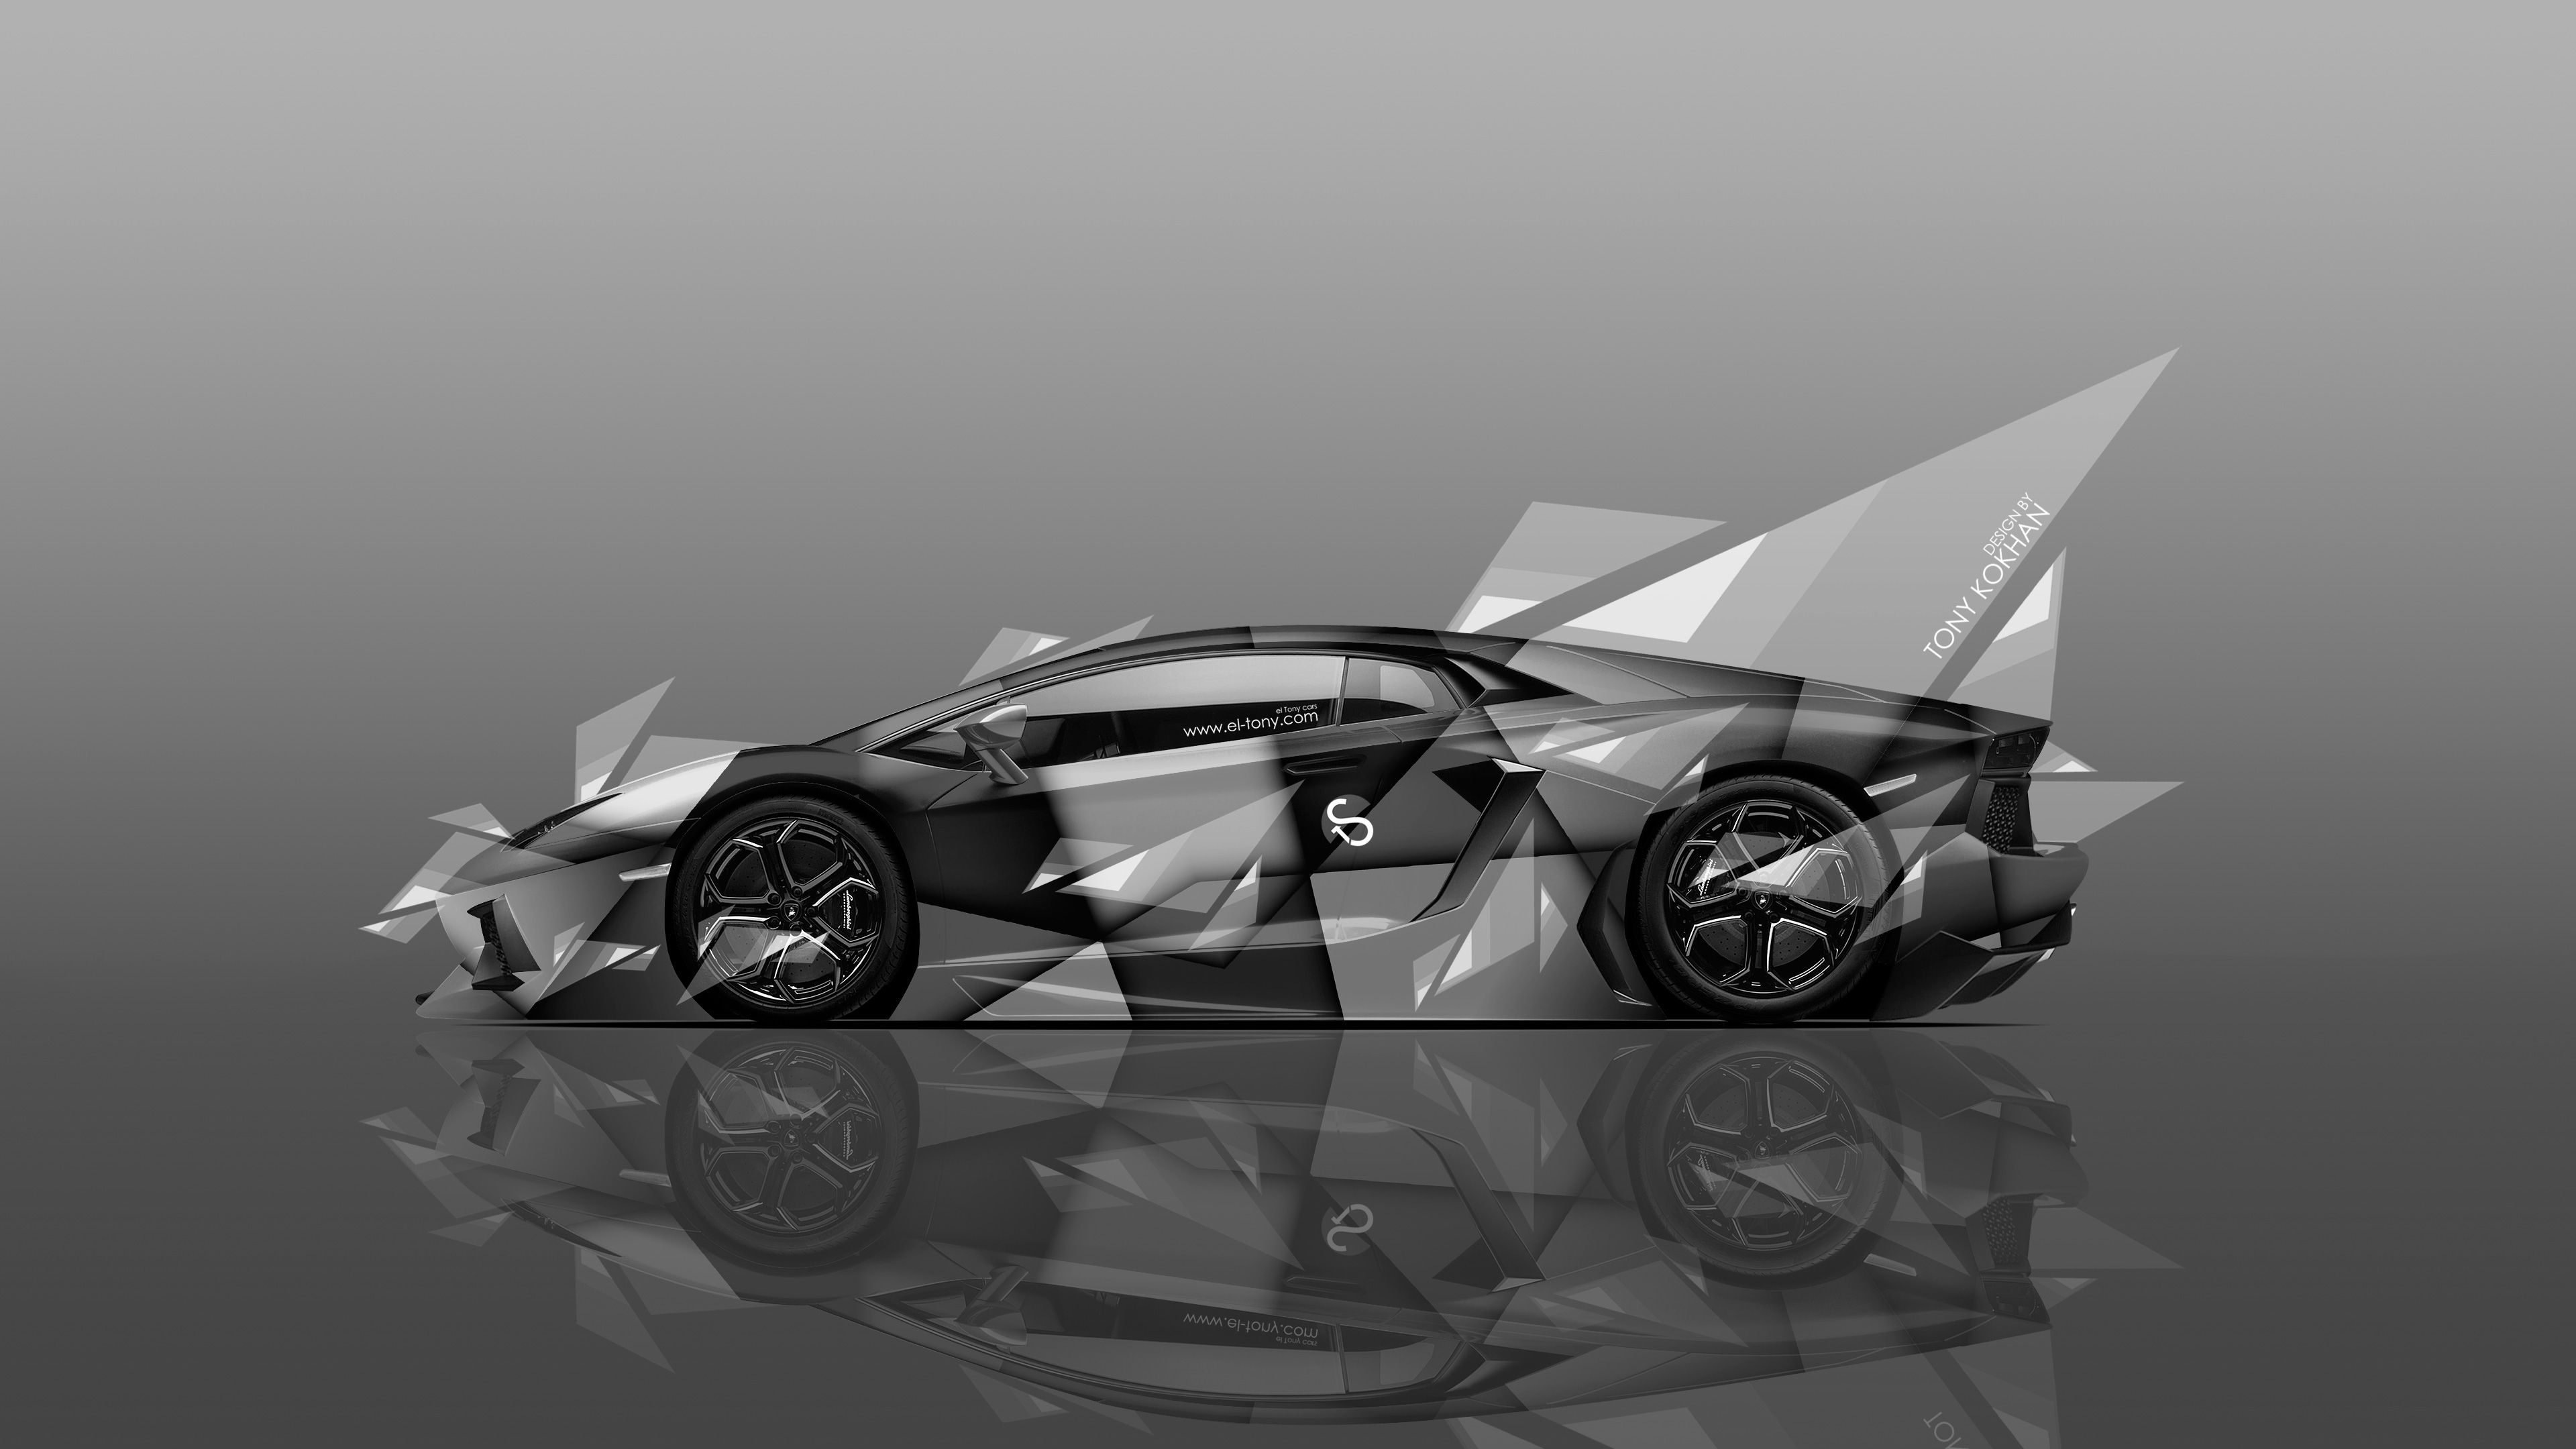 4K Wallpapers Lamborghini Aventador Side Aerography Car 2014 | el Tony